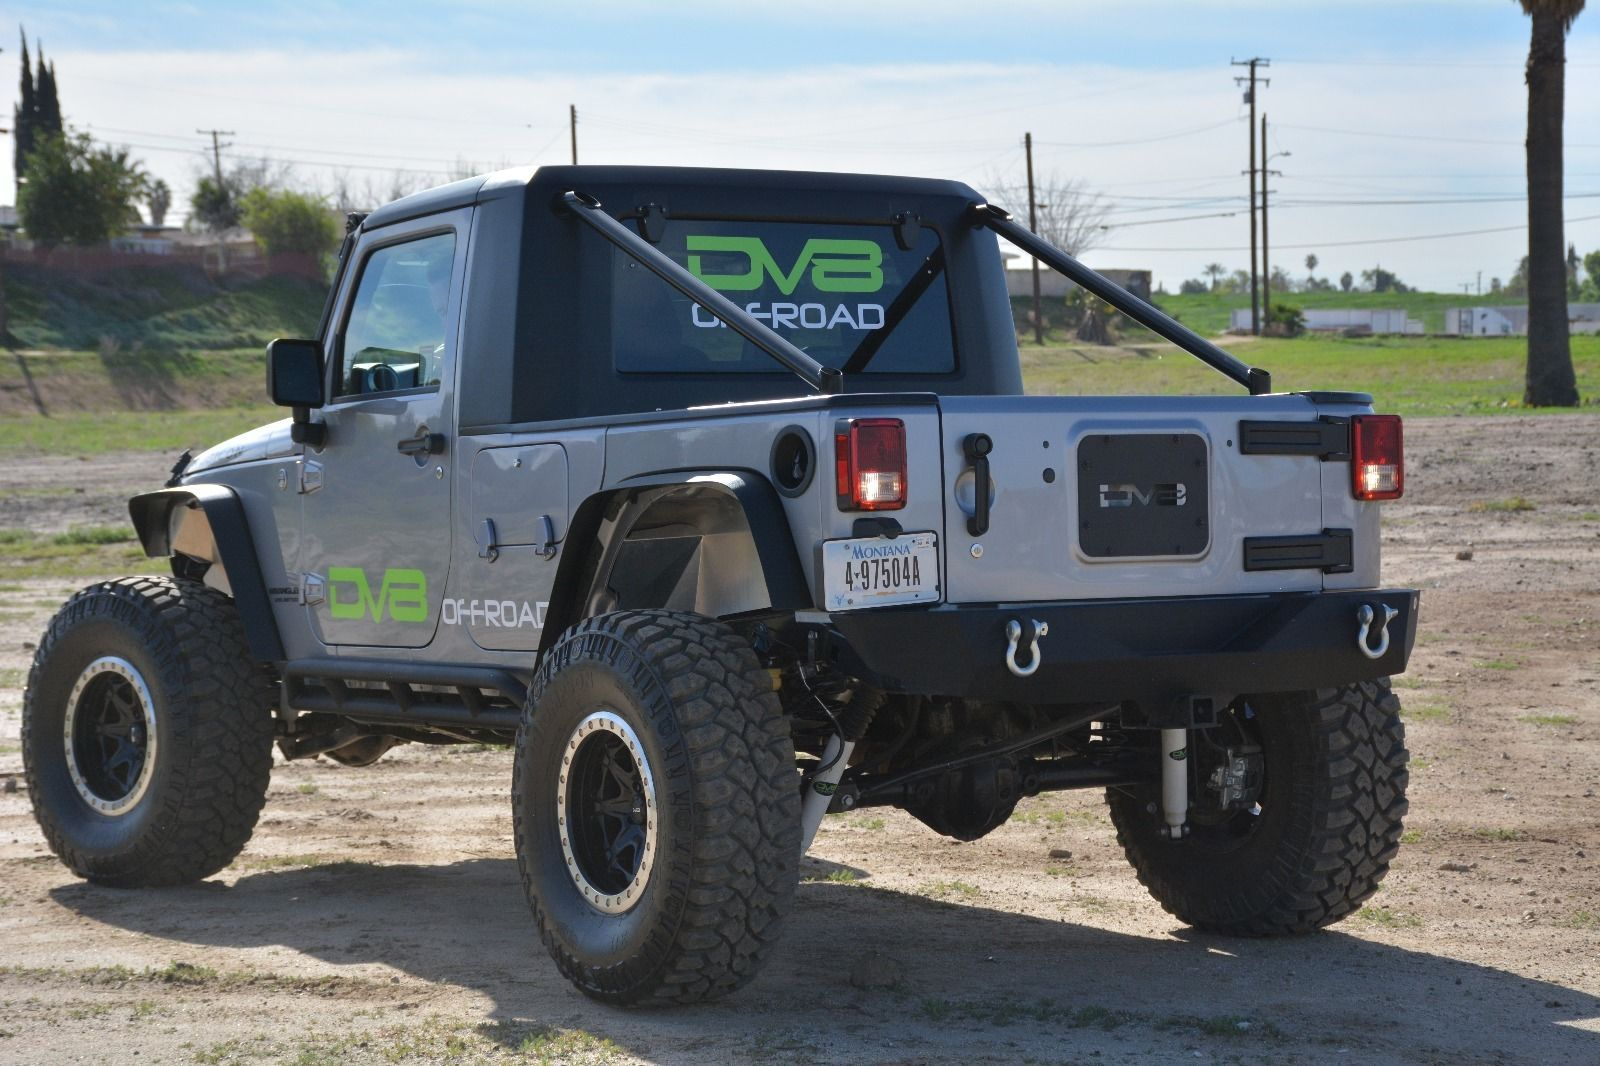 Car brand auctioned jeep wrangler truck conversion new 2015 jeep jk rubicon truck conversion dv8